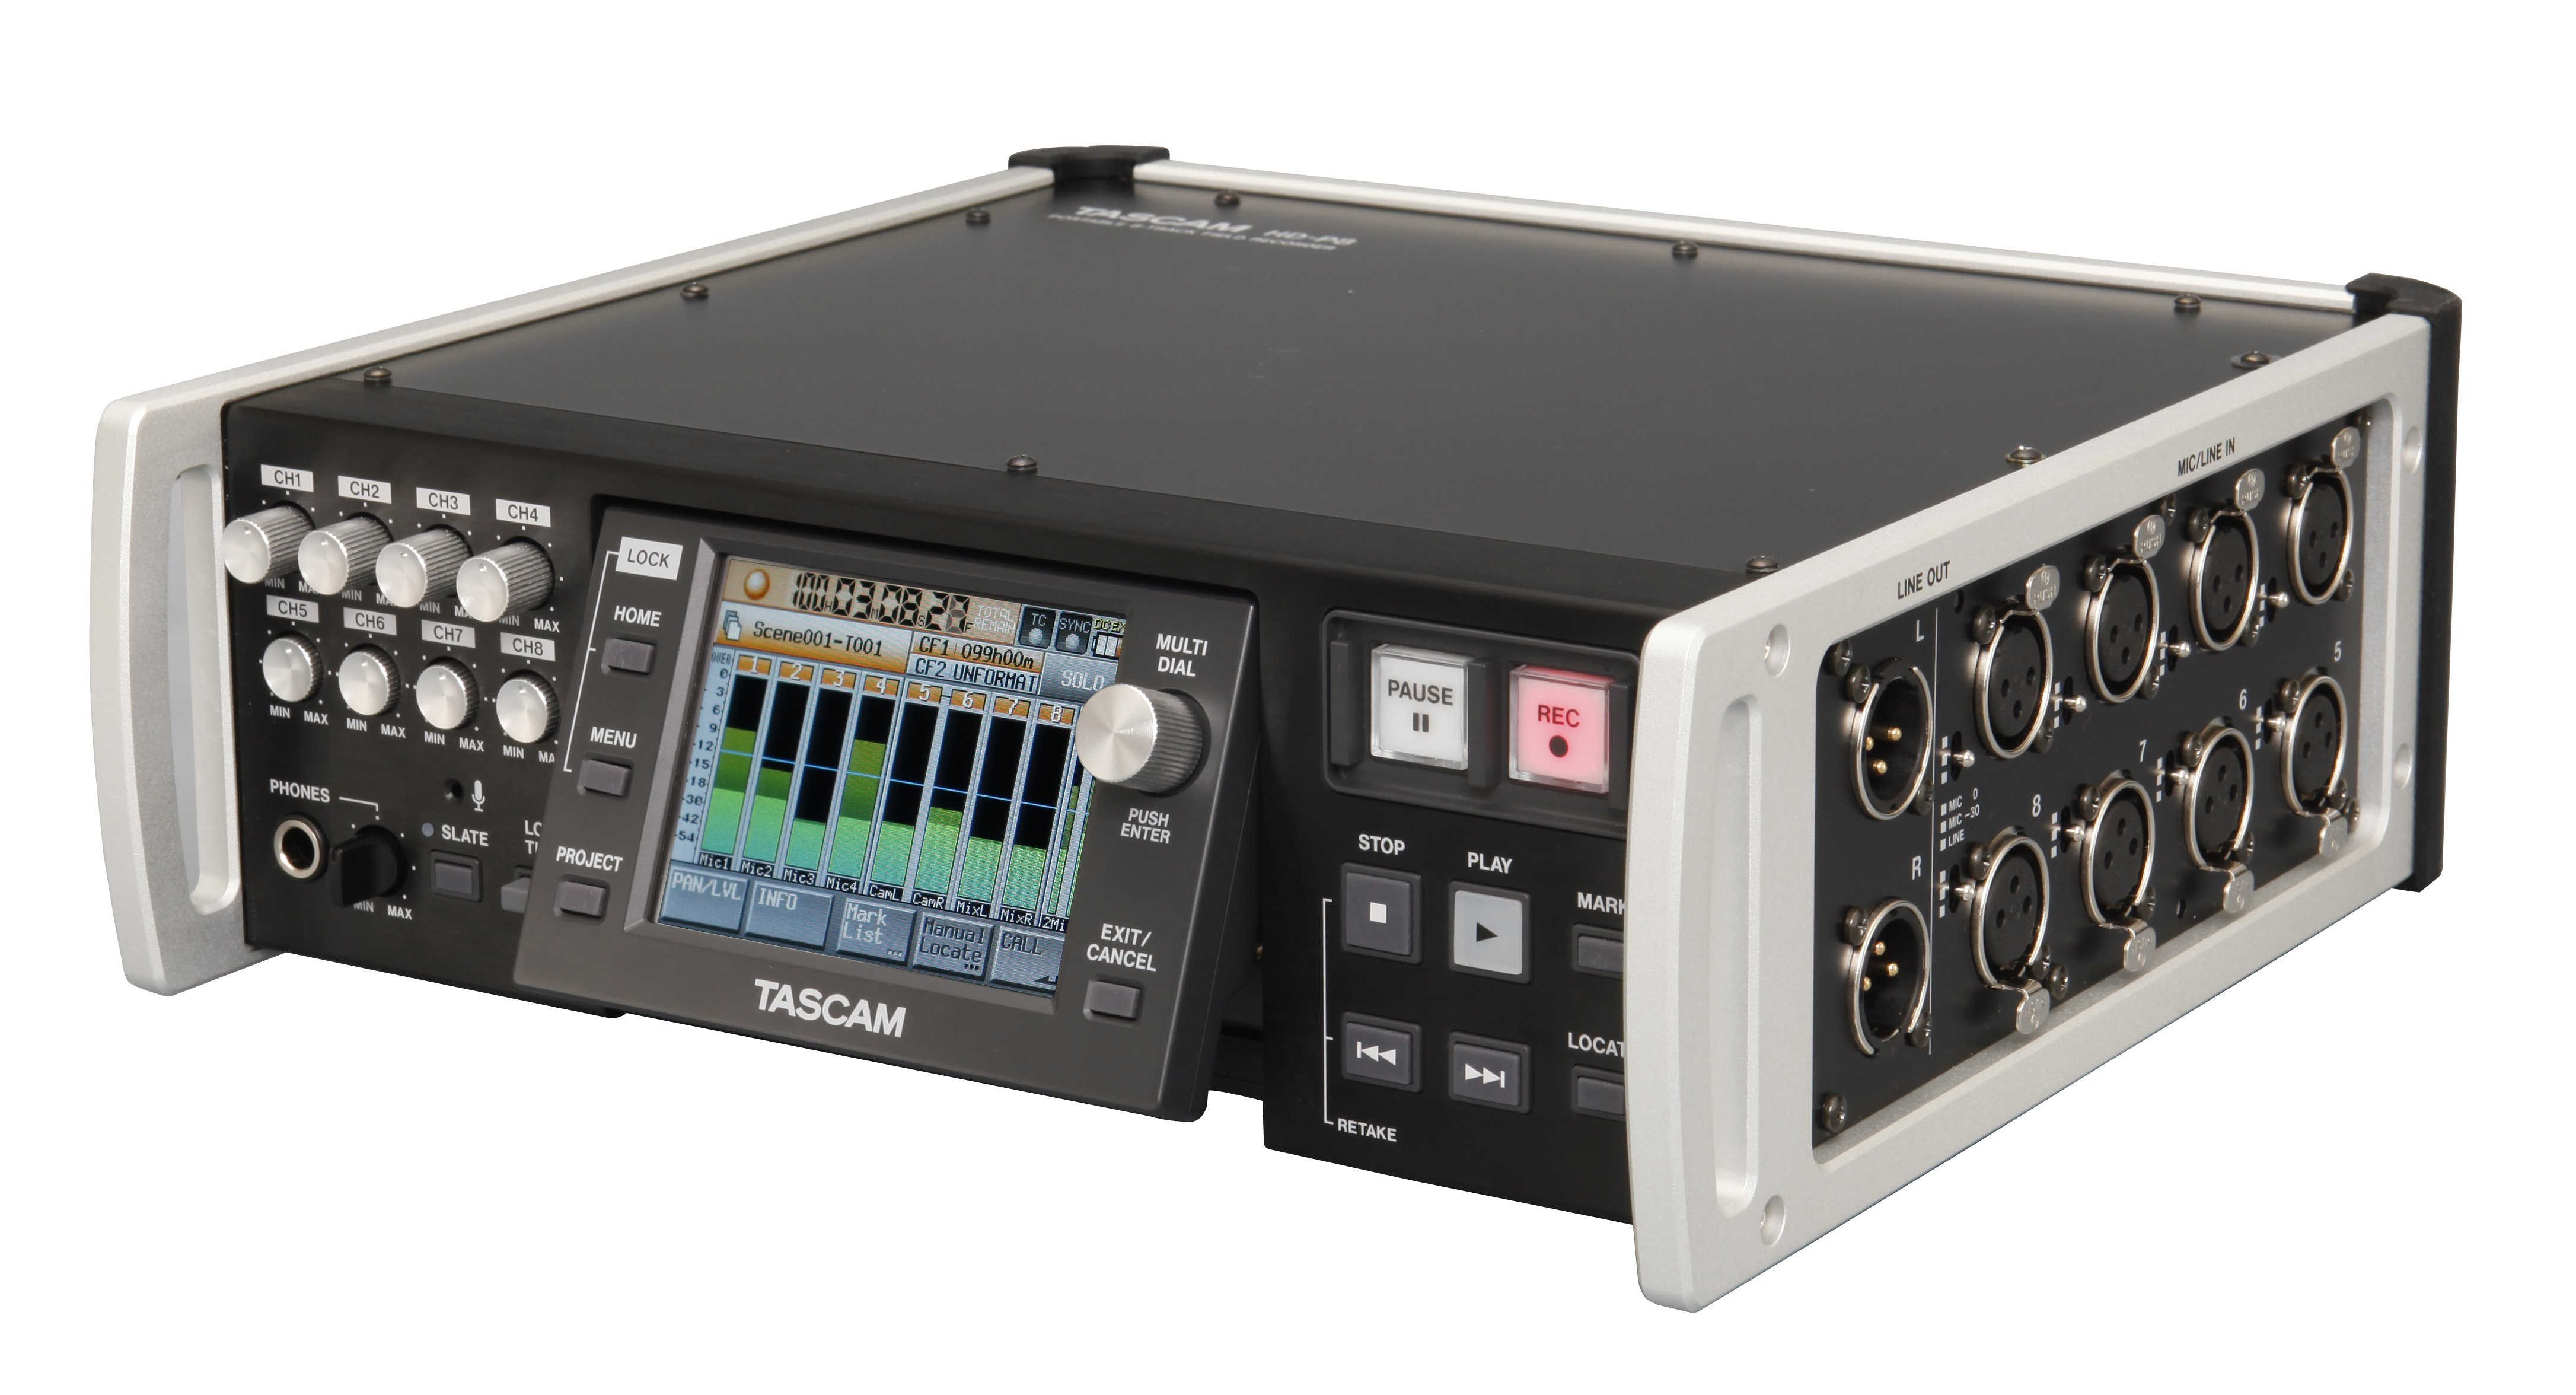 High-Resolution 8-Track Field Recorder with Dual Compact Flash Card Slots and Time Code